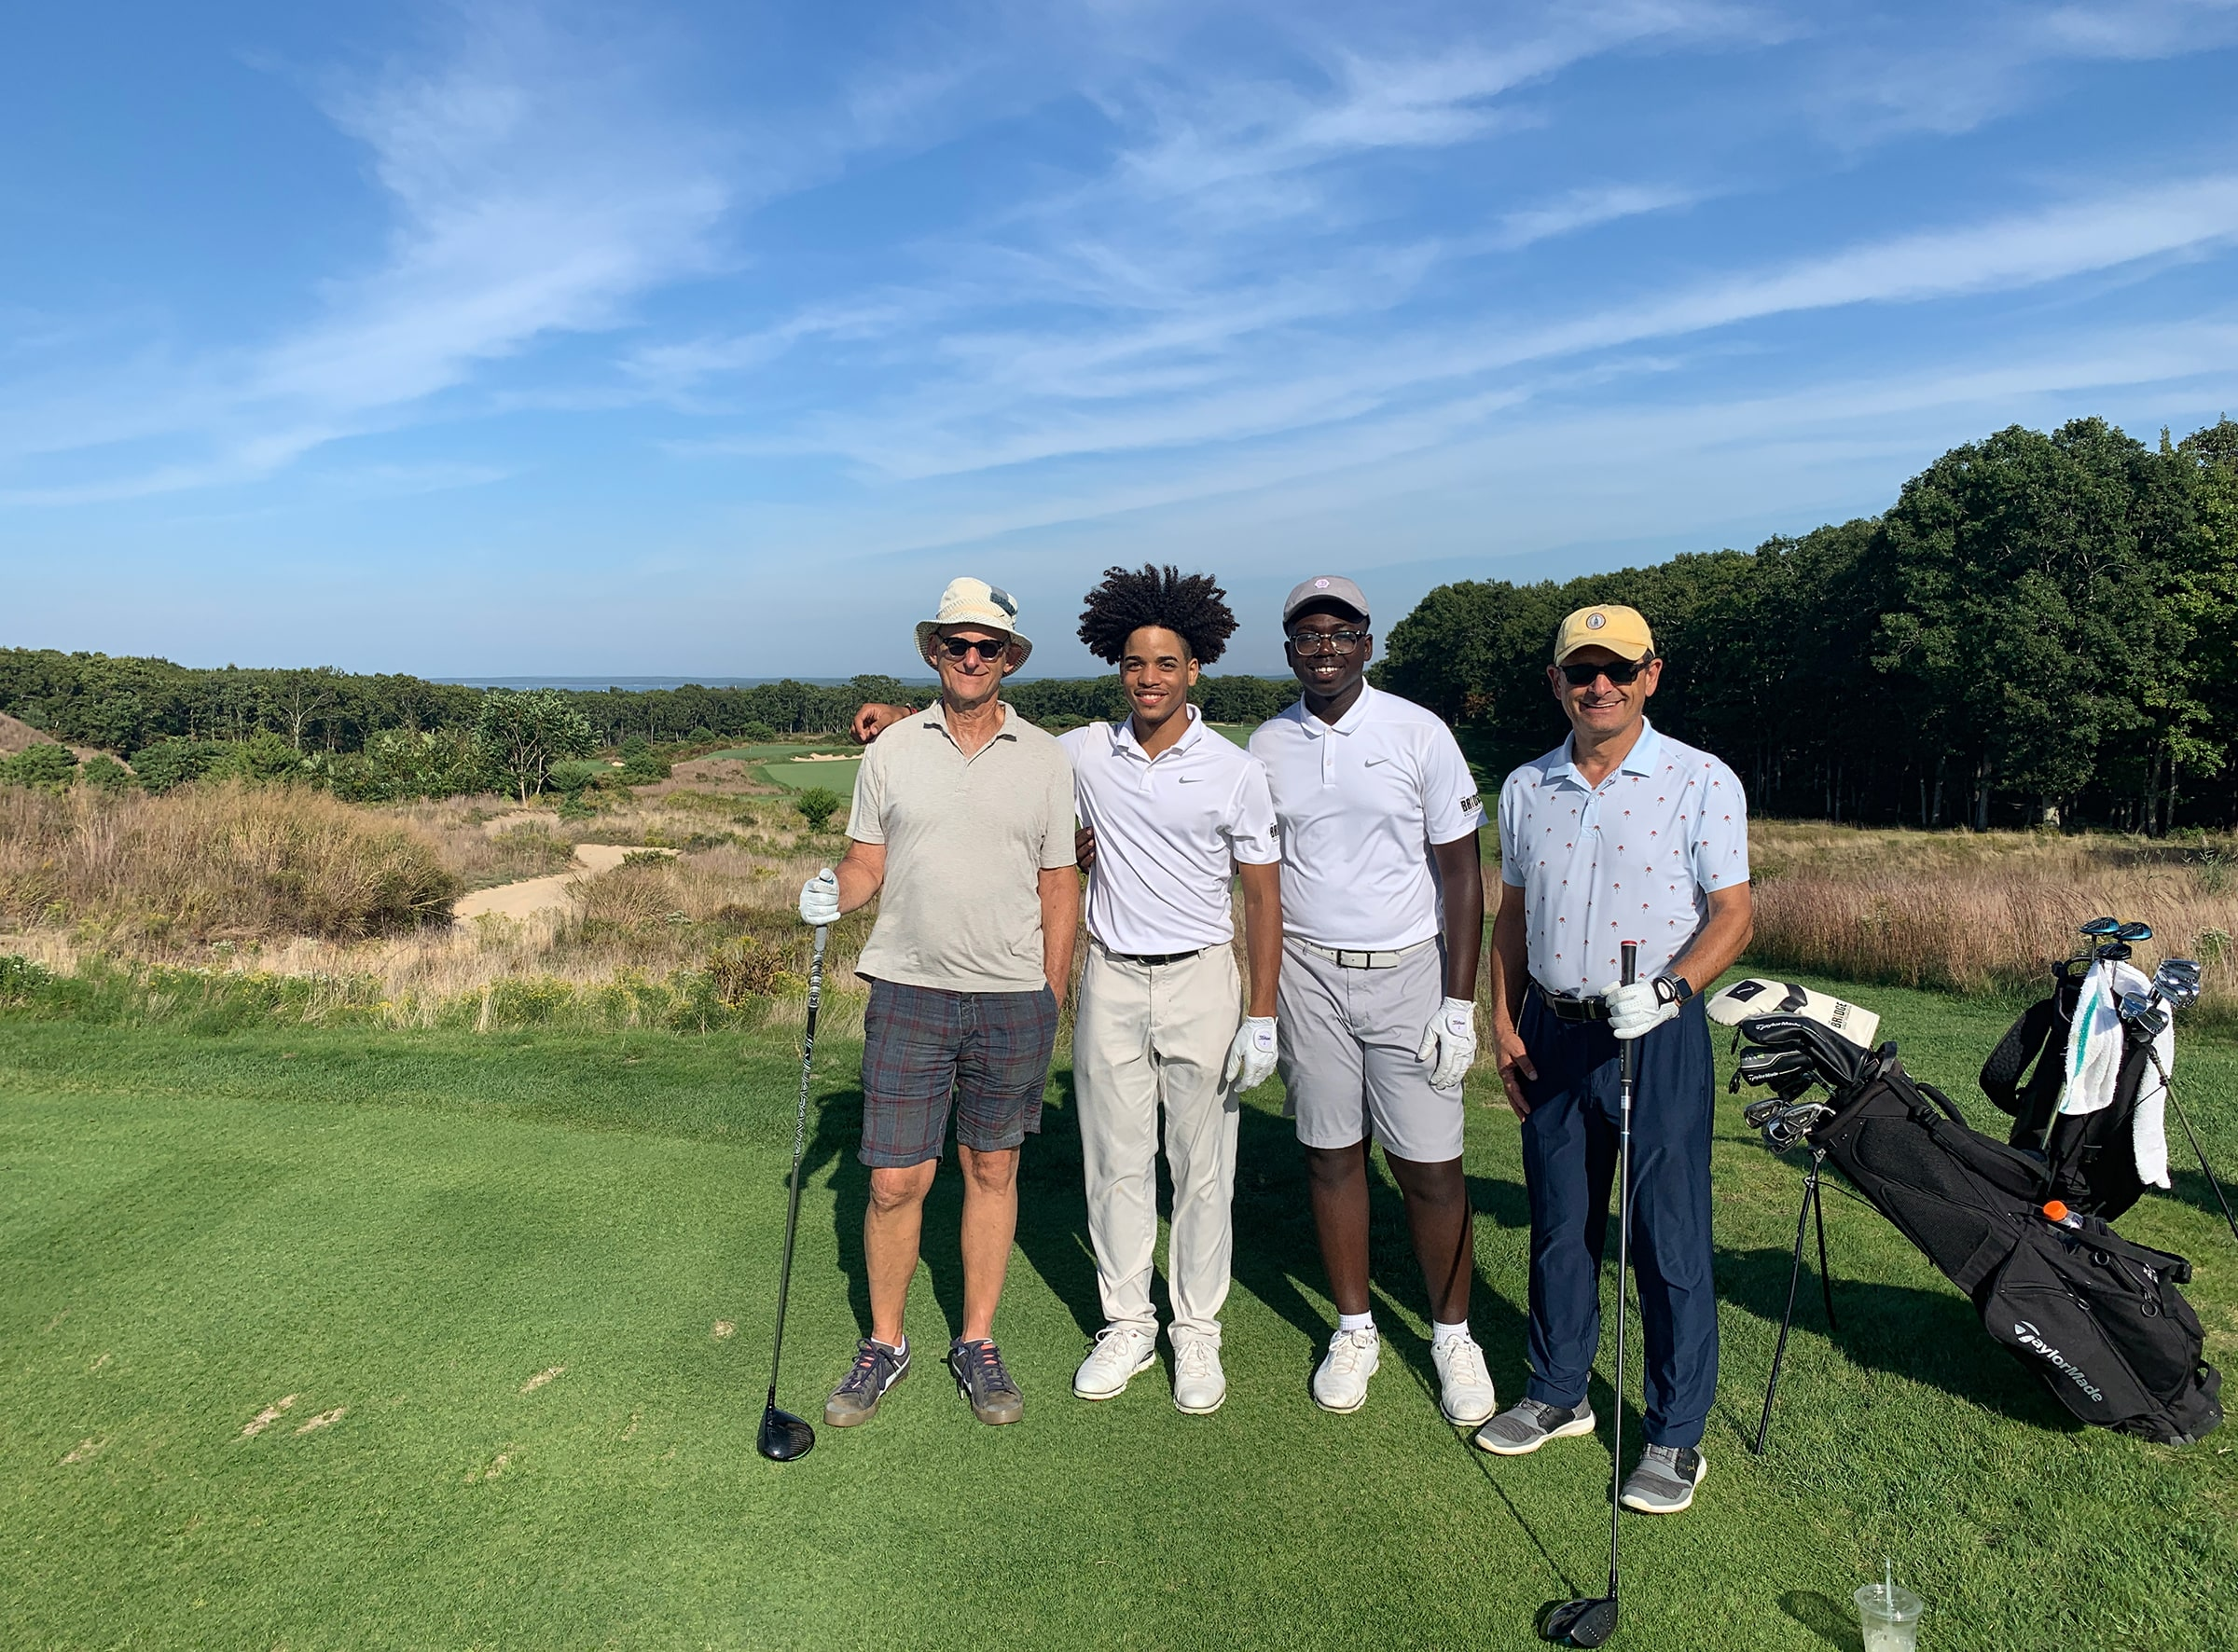 Bob Rubin, co-founder of The Bridge Golf Foundation, played with, from left, Juan Cortorreal, Zion Smith, and Mark Cohen.